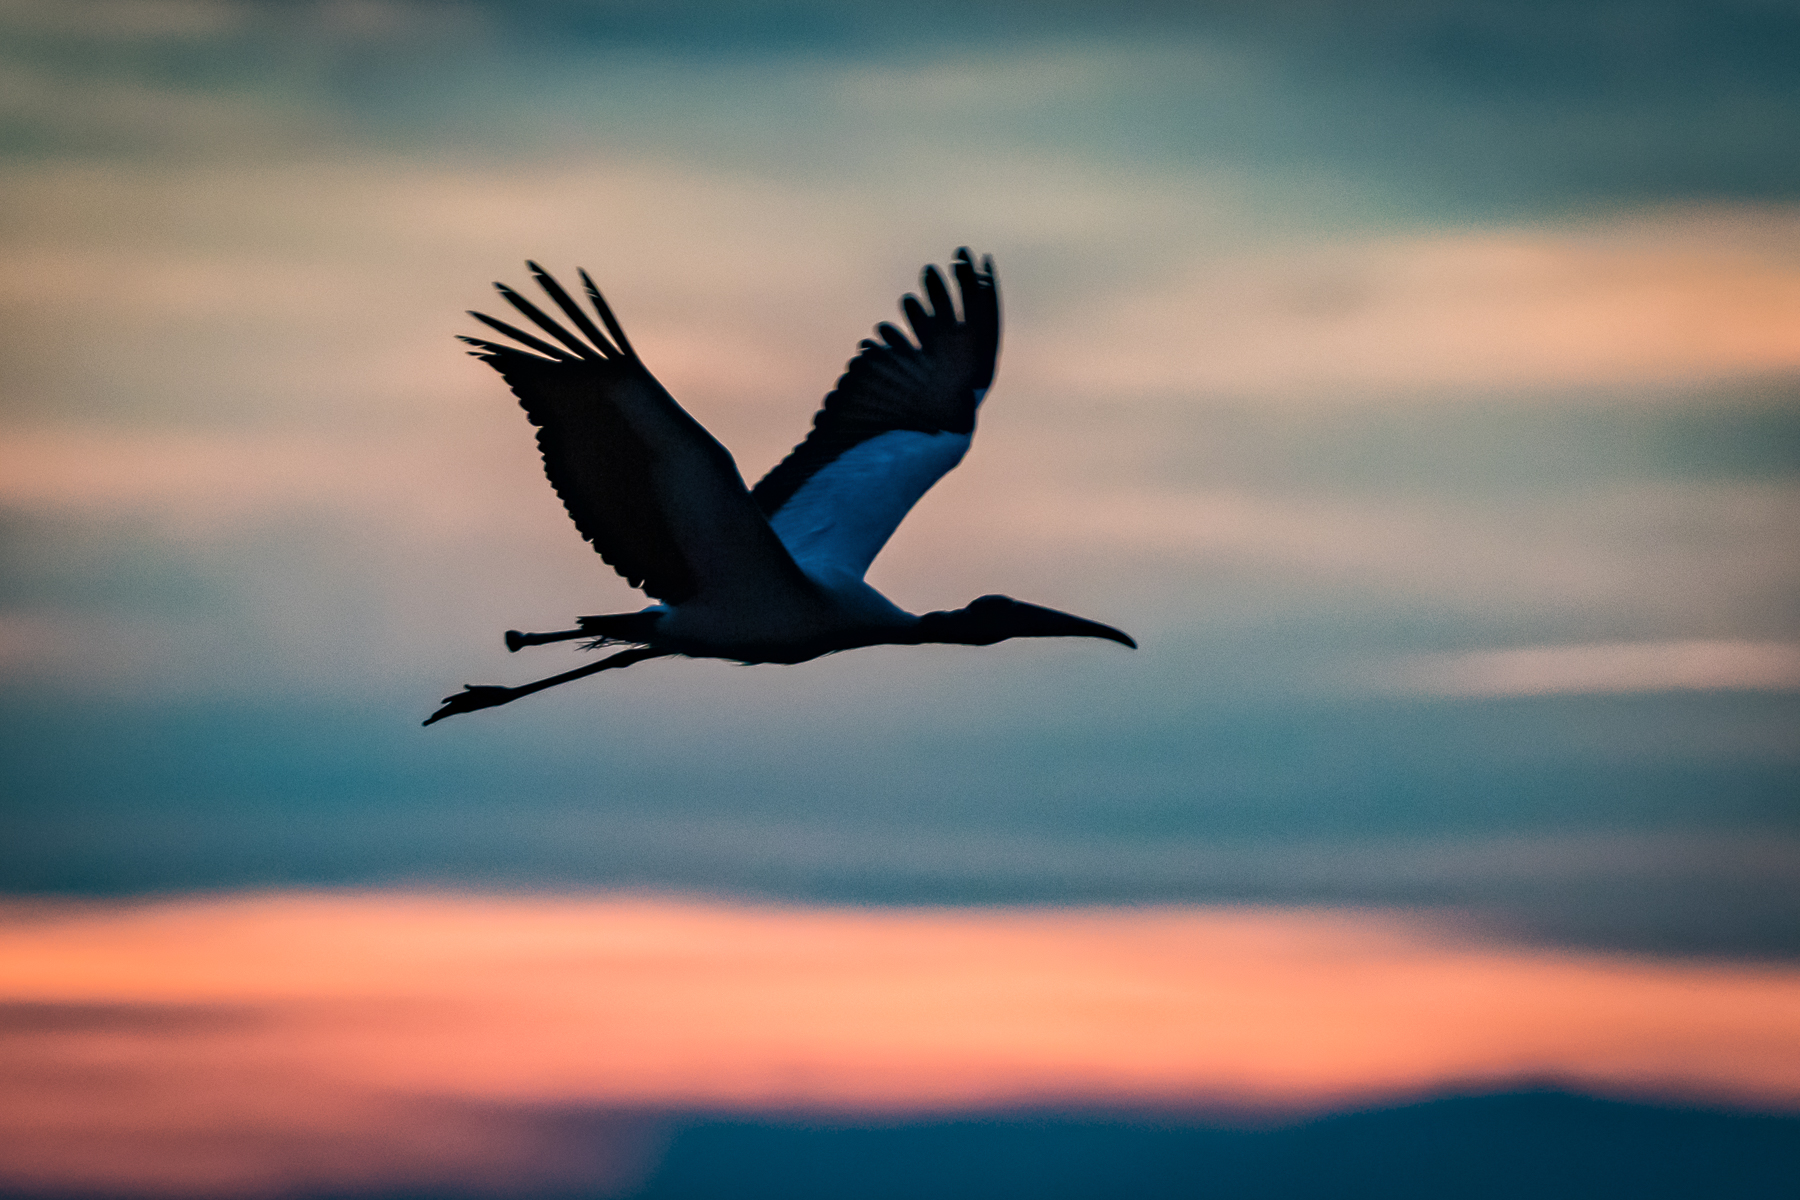 Wood stork at sunset. Kiawah Island, South Carolina.